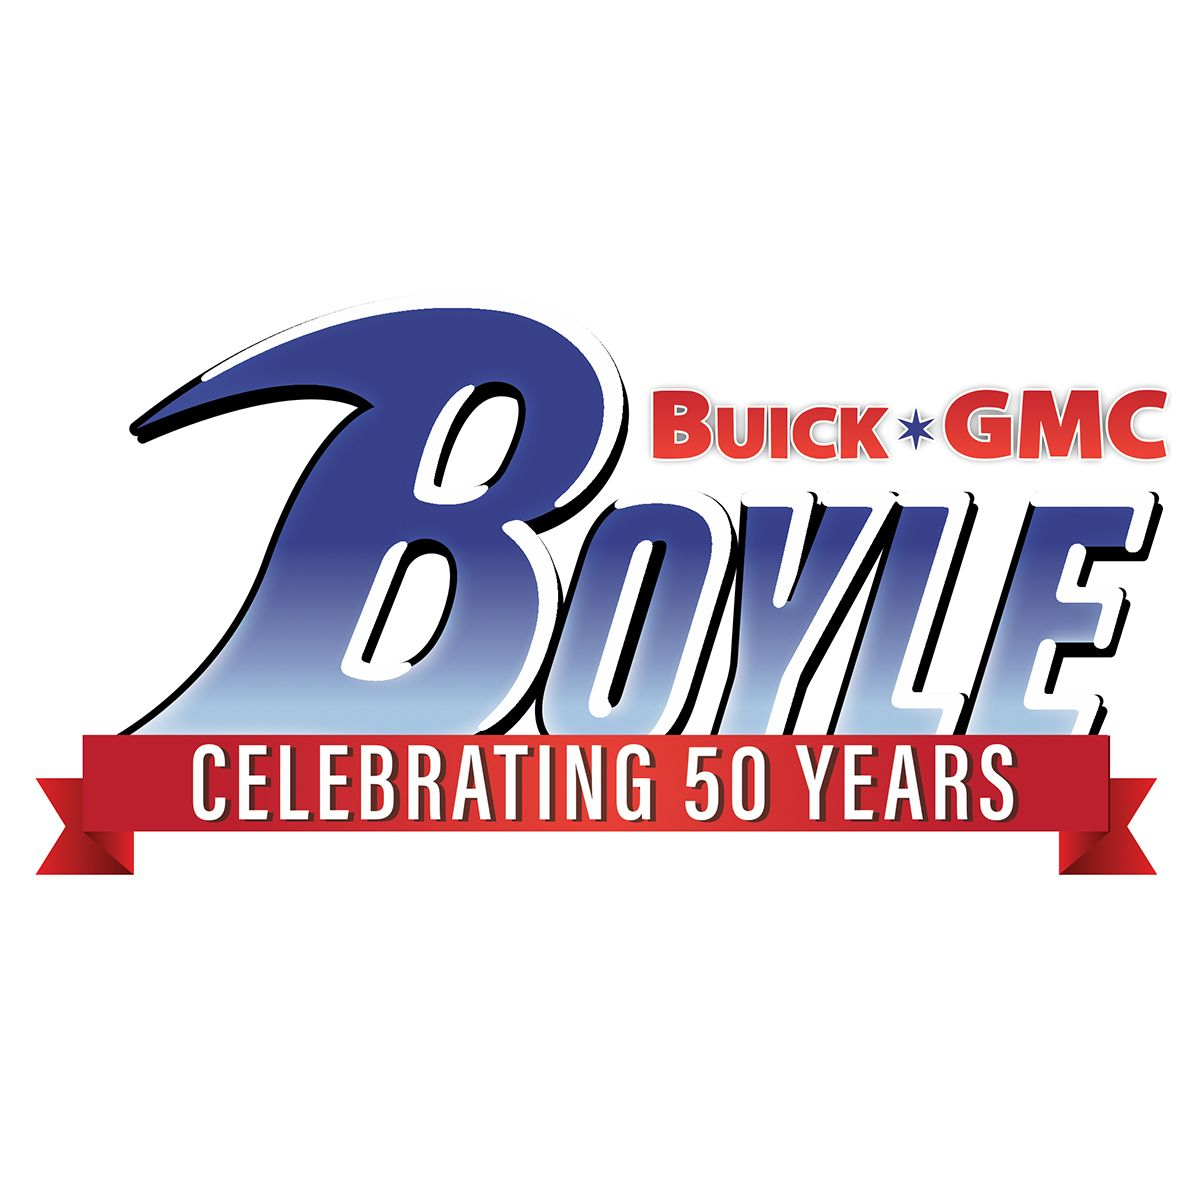 we always love thanking our sponsors the partnerships we have with our community businesses is amazing today we thank boy buick gmc community business buick pinterest